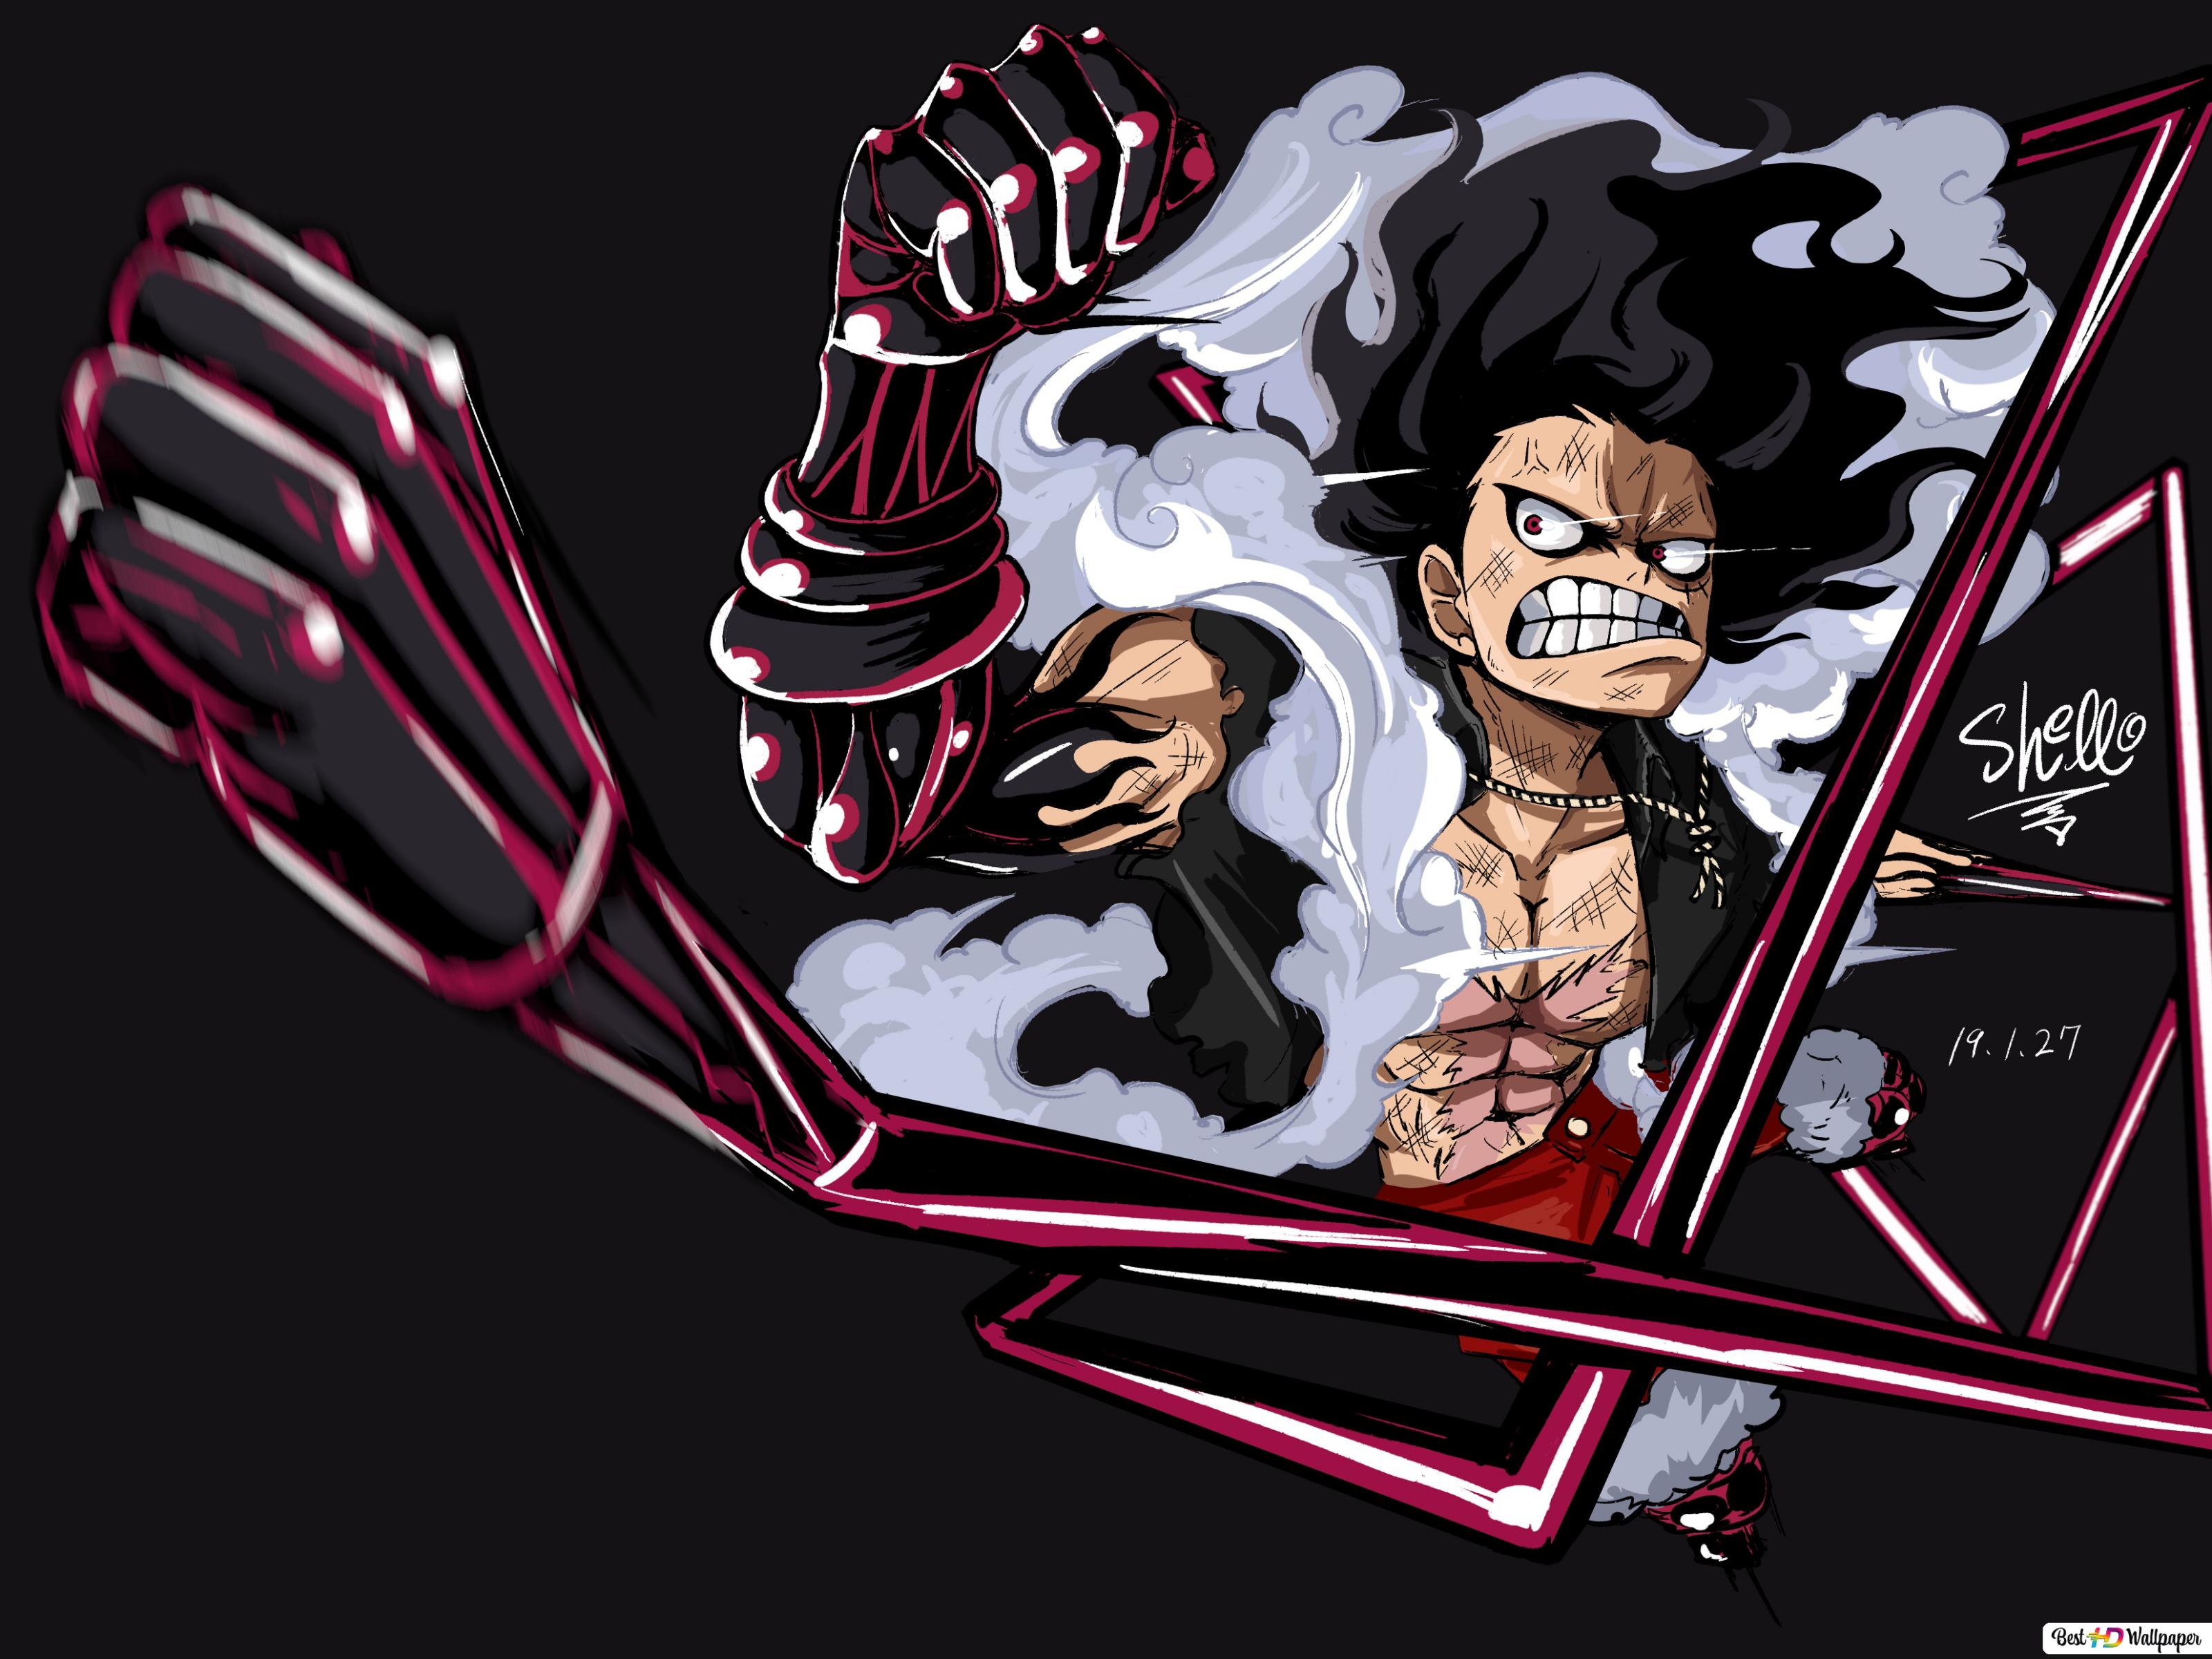 Wallpaper One Piece Luffy Lucu Top Anime Wallpaper